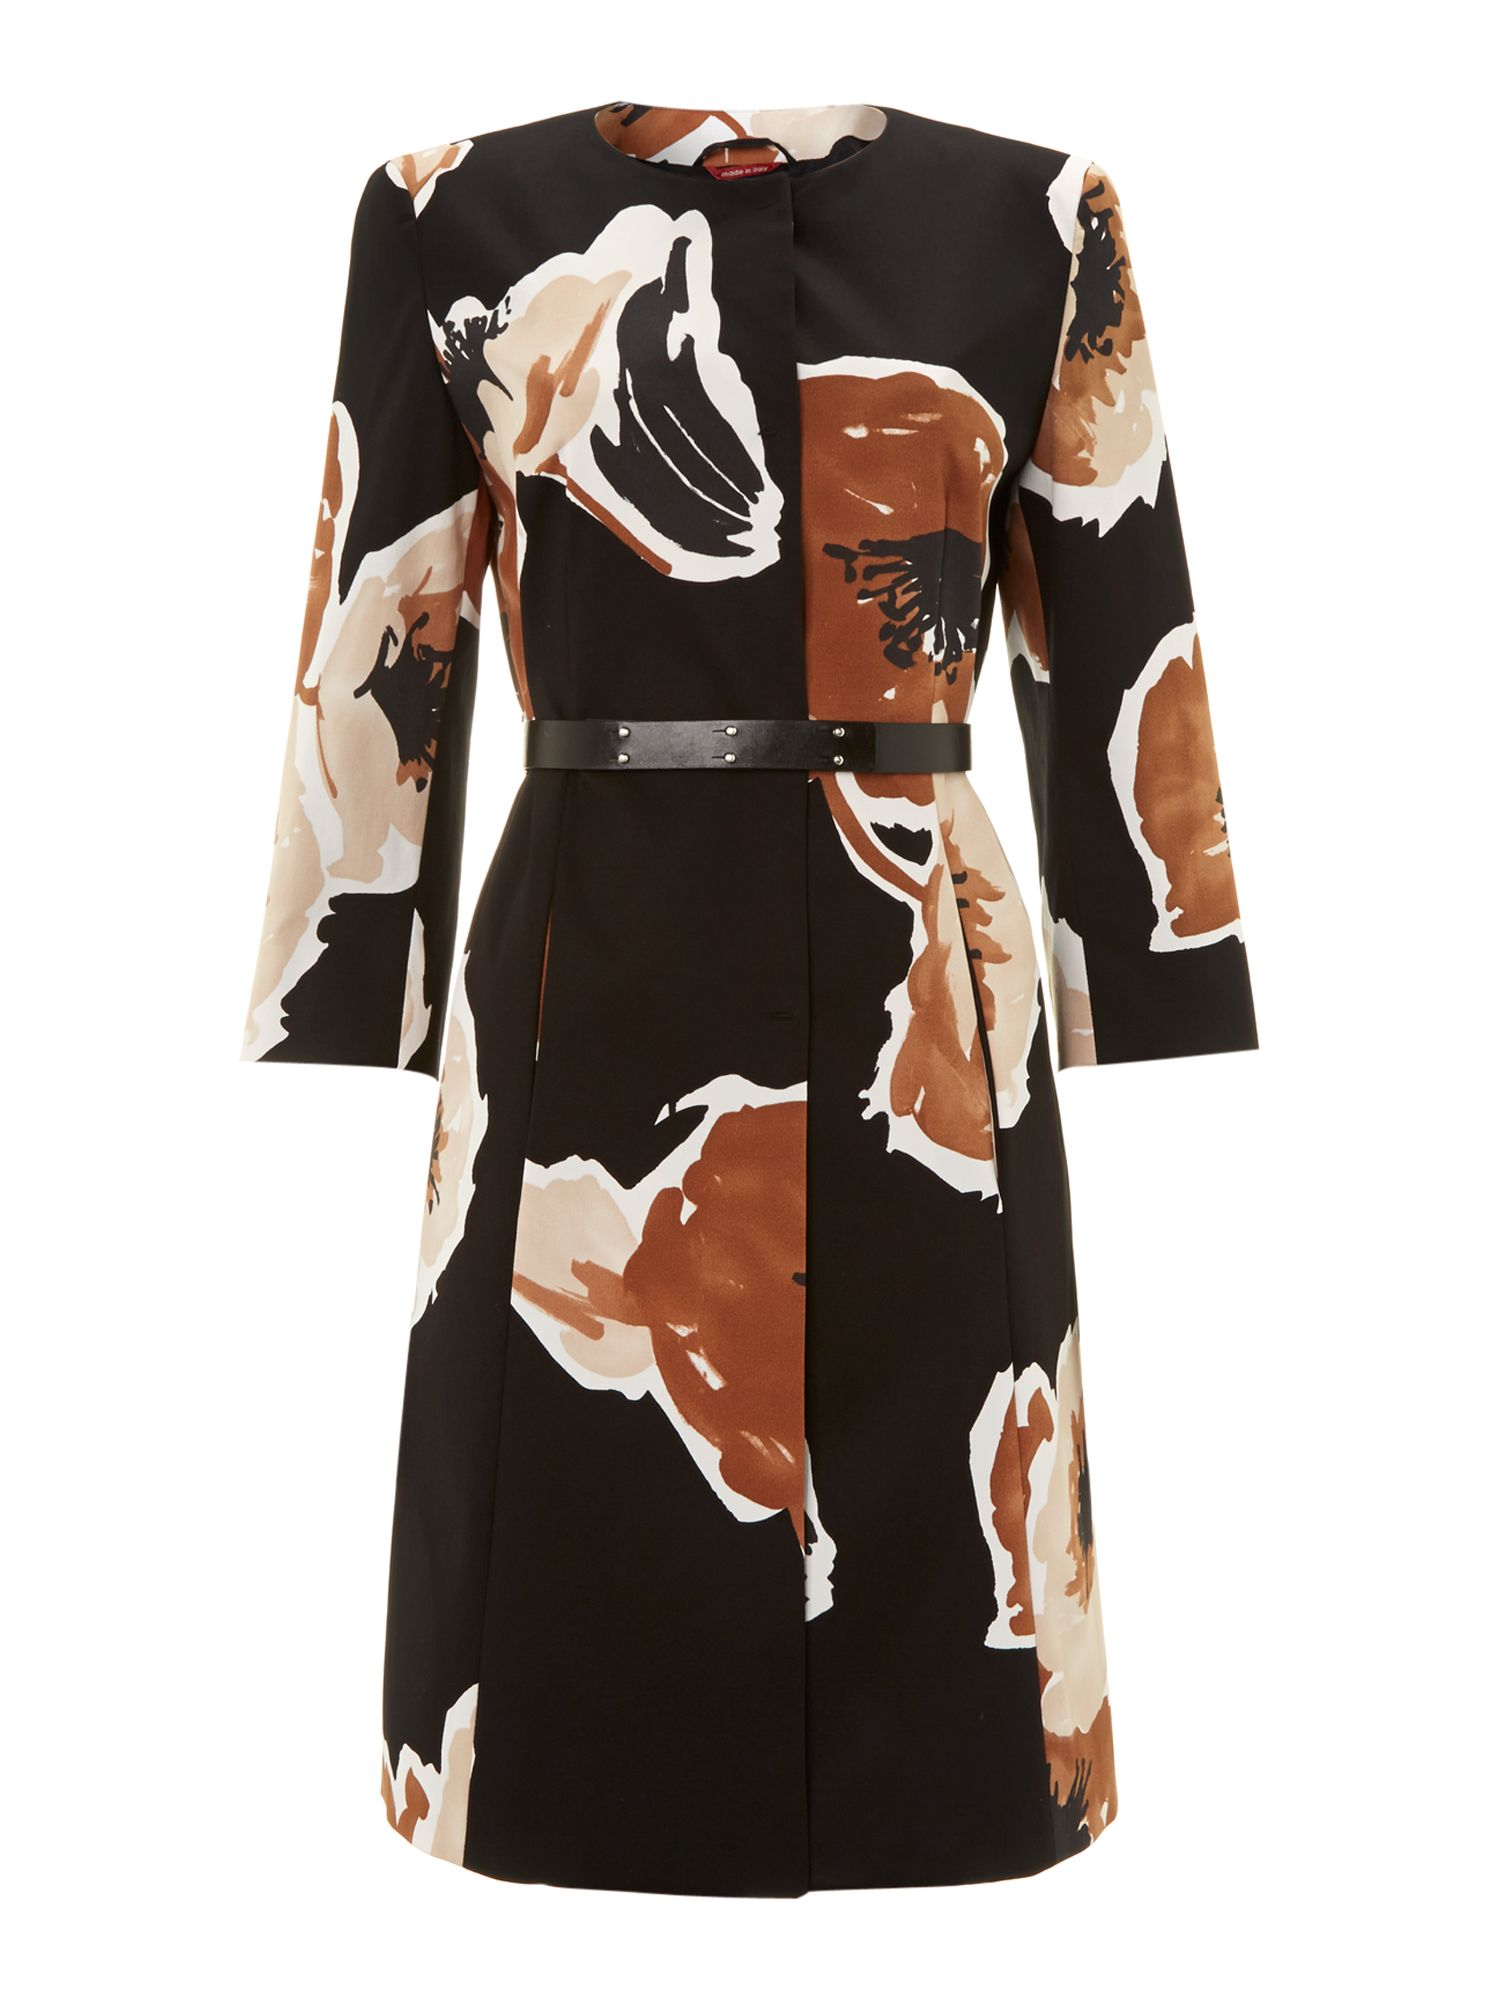 Giunto long sleeved floral print dress coat